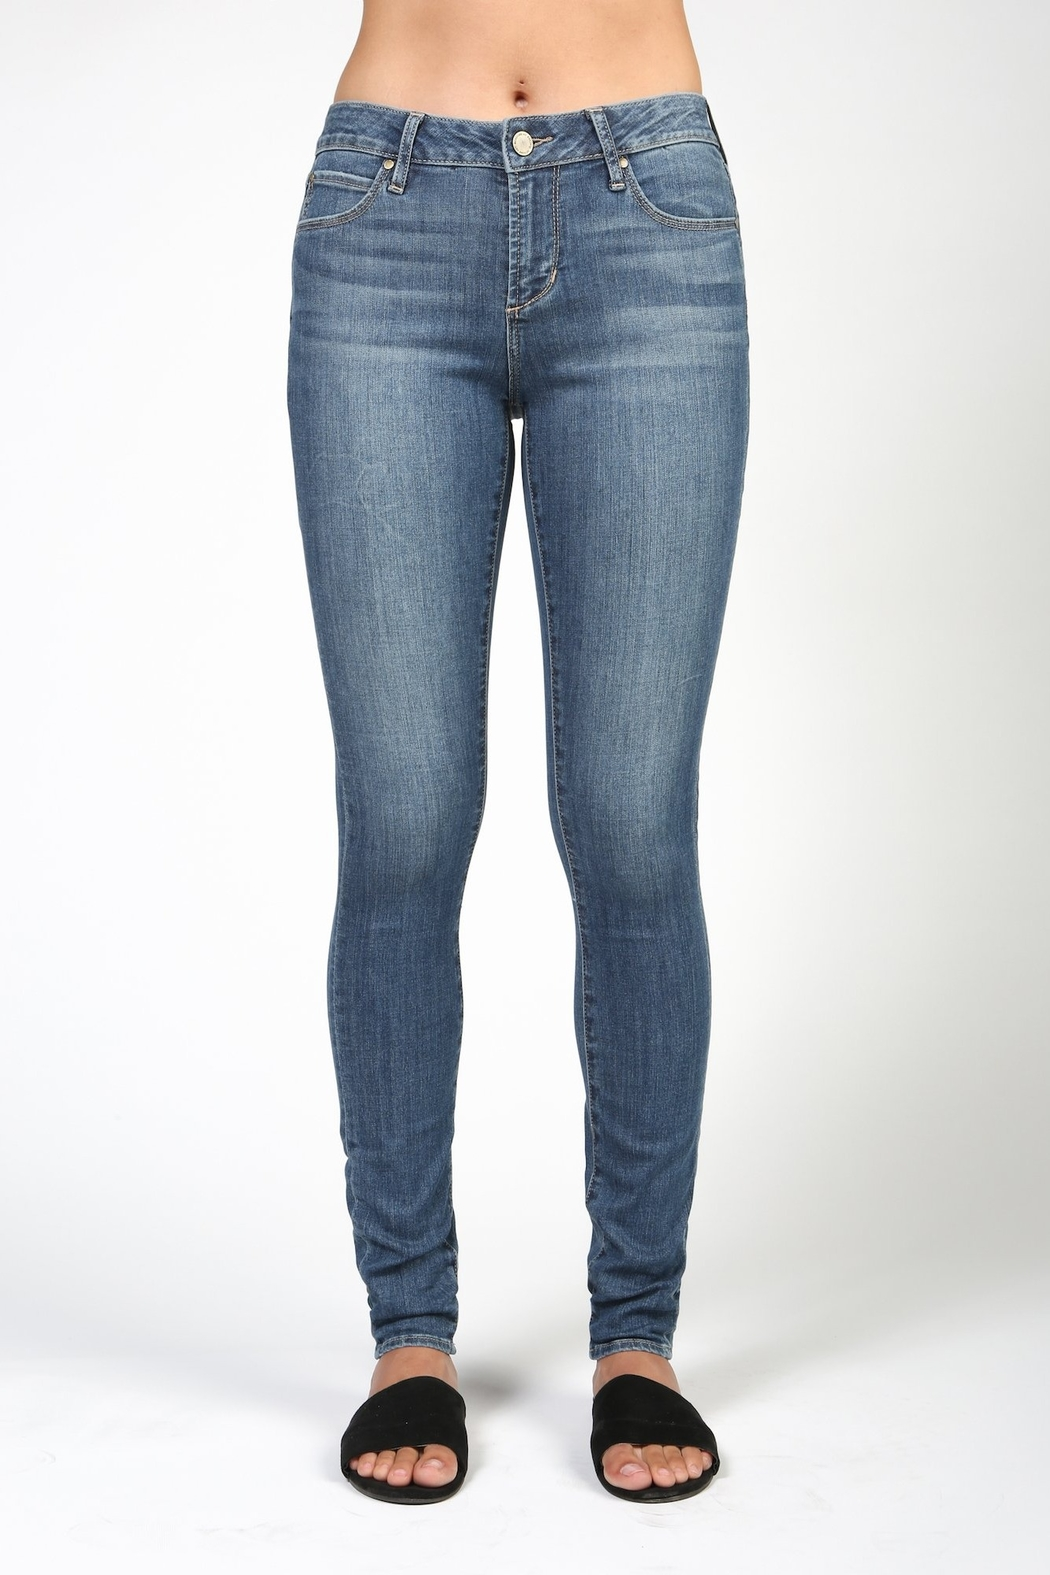 Articles of Society Super Soft Skinny Jean - Main Image